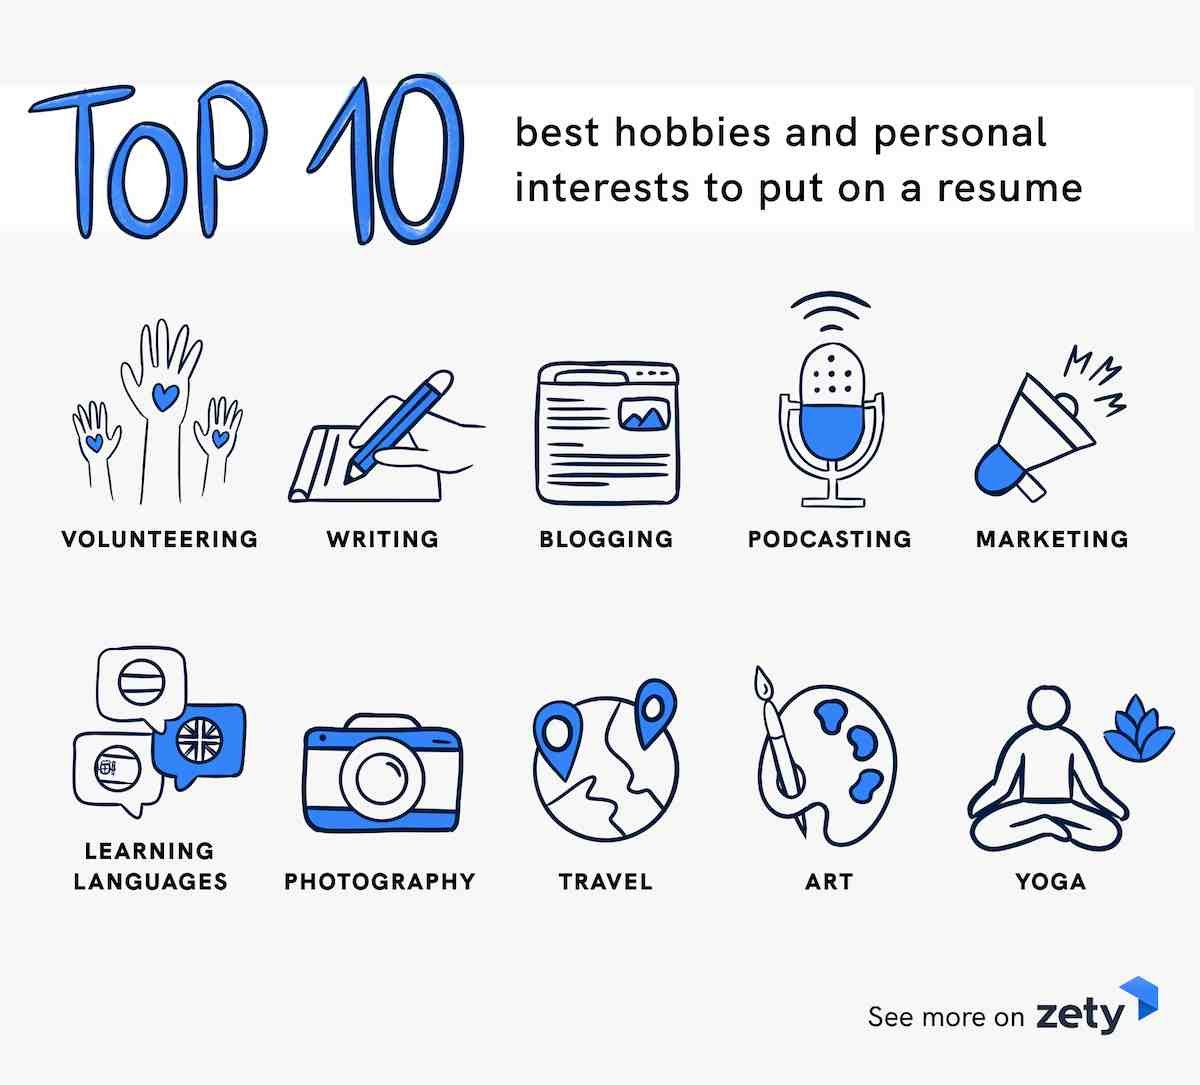 of hobbies and interests for resume cv examples good top best personal to put on zety Resume Good Hobbies For Resume